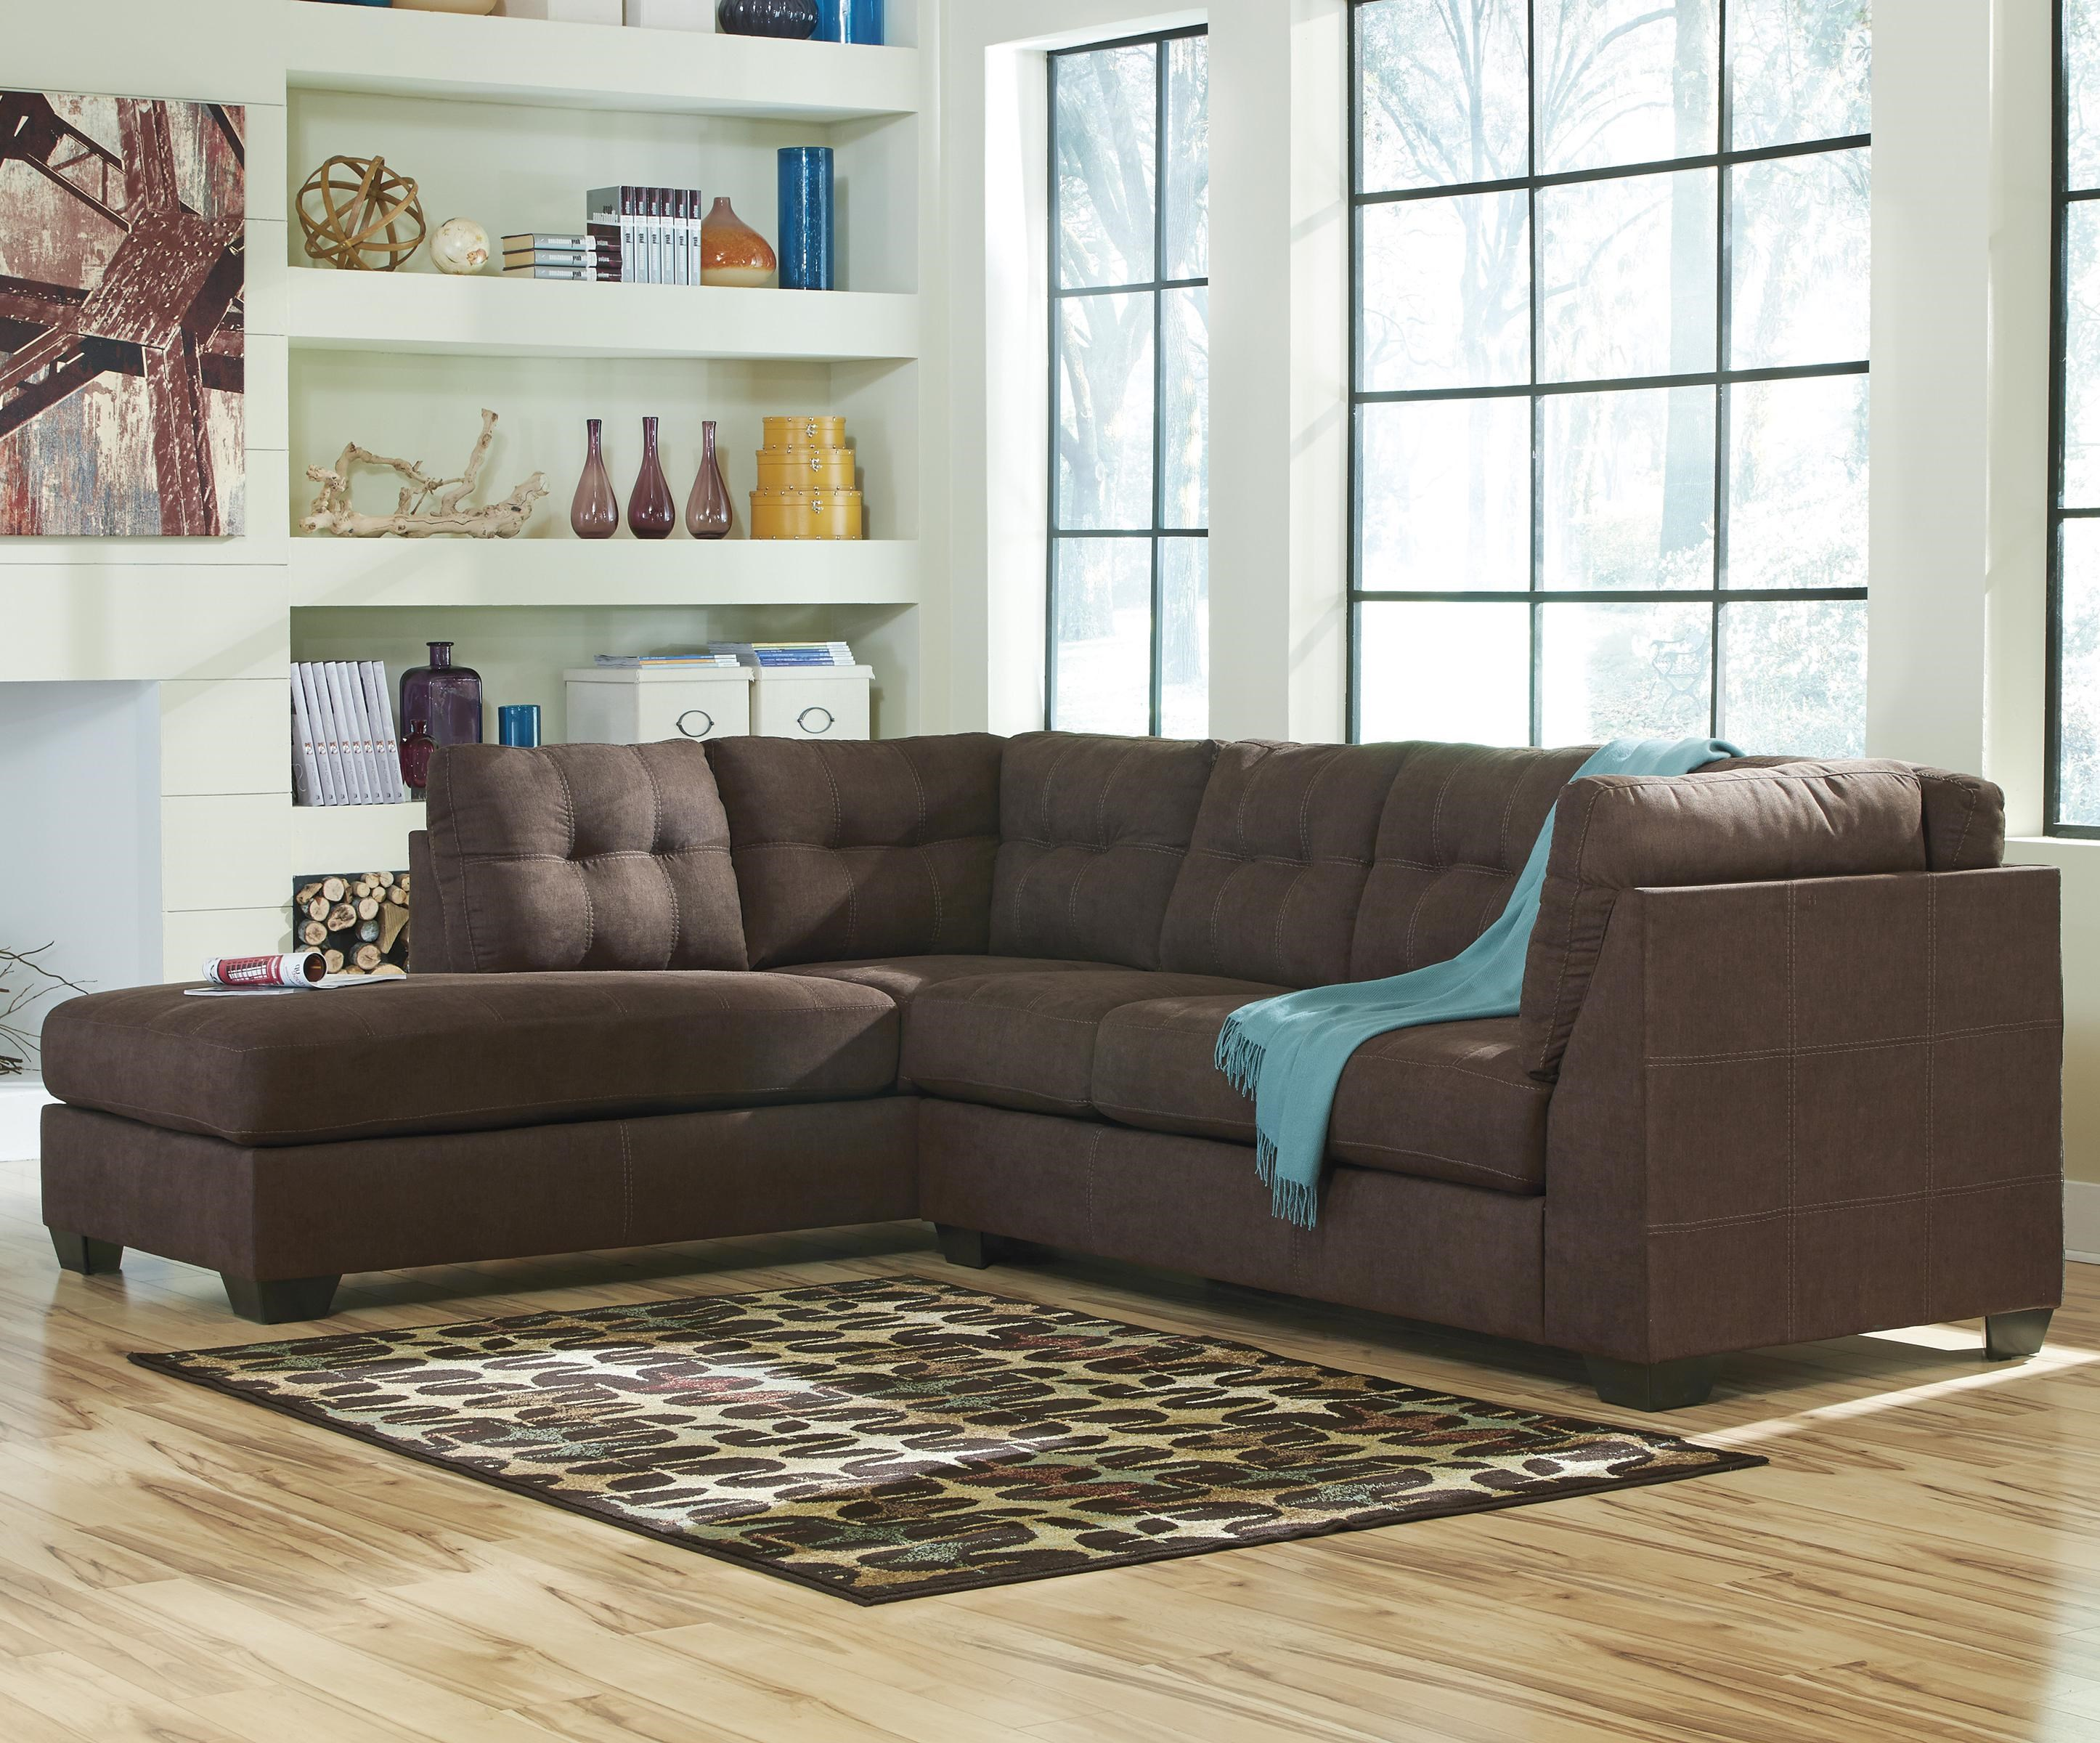 2-Piece Sectional w/ Sleeper Sofa & Left Chaise